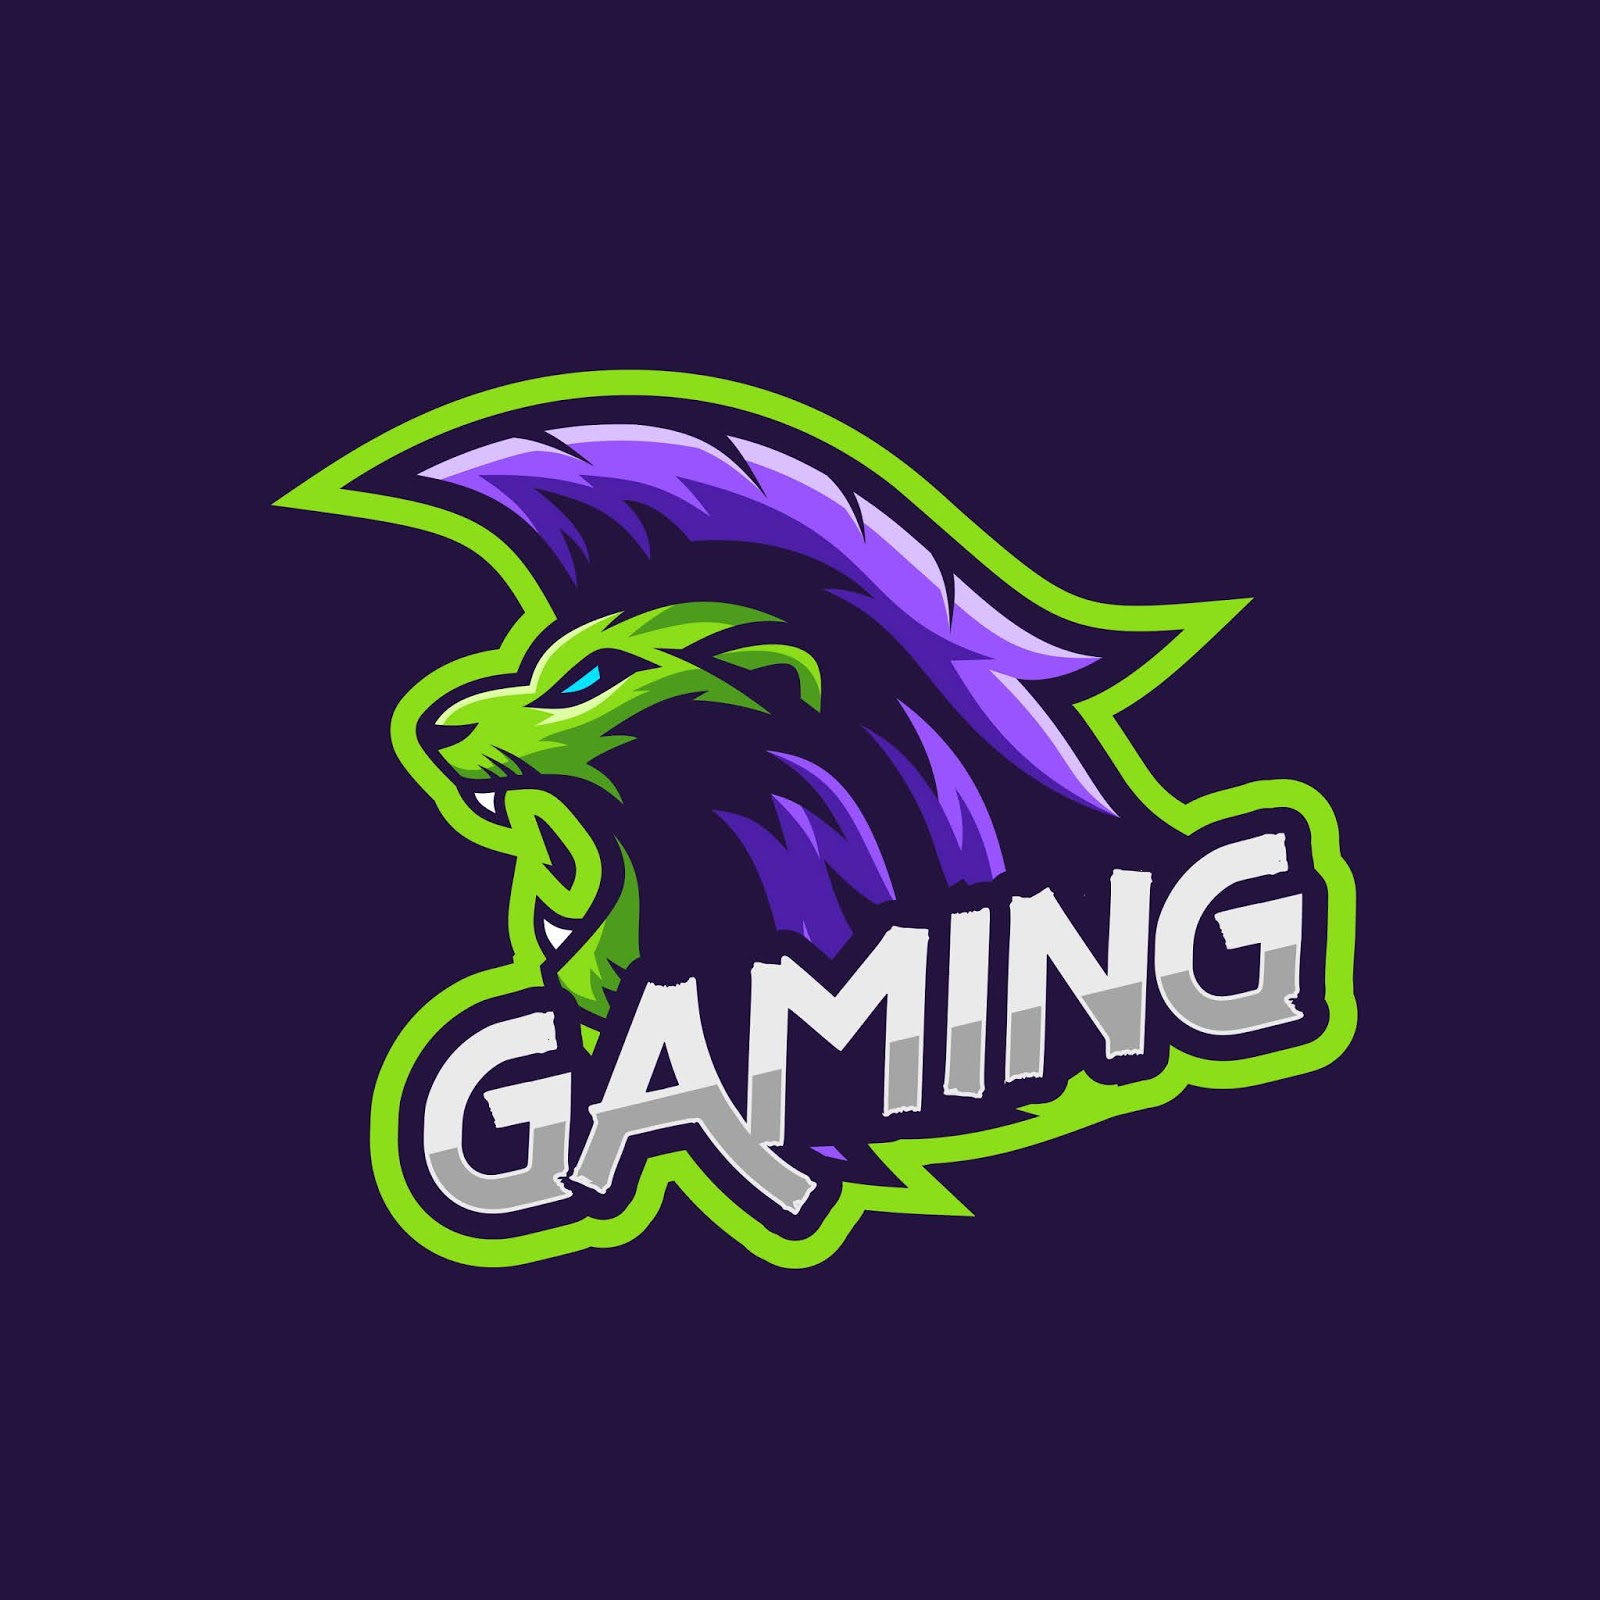 Lion With Punk Hair Style Gaming Squad Logo Free Download Vector CDR, AI, EPS and PNG Formats